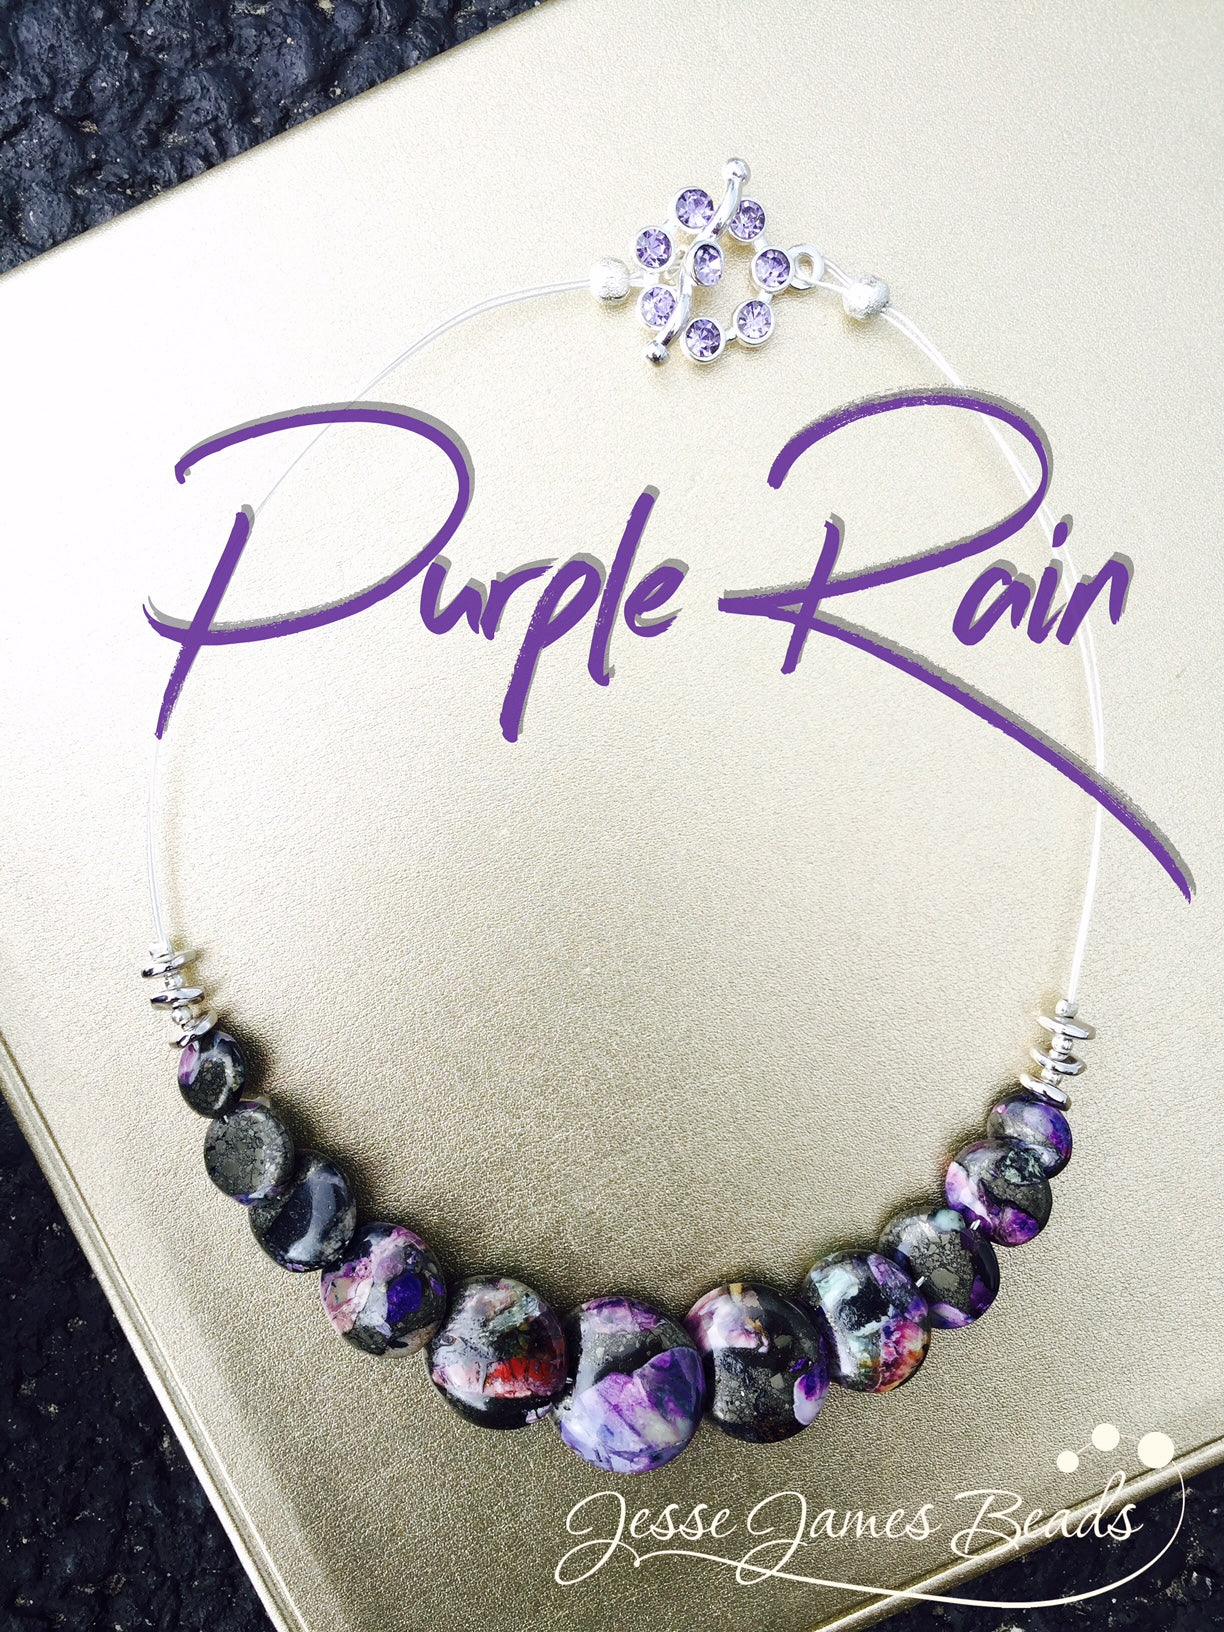 Purple Rain Necklace - Choker Necklace Homage for Prince - Candie Cooper for Jesse James Beads